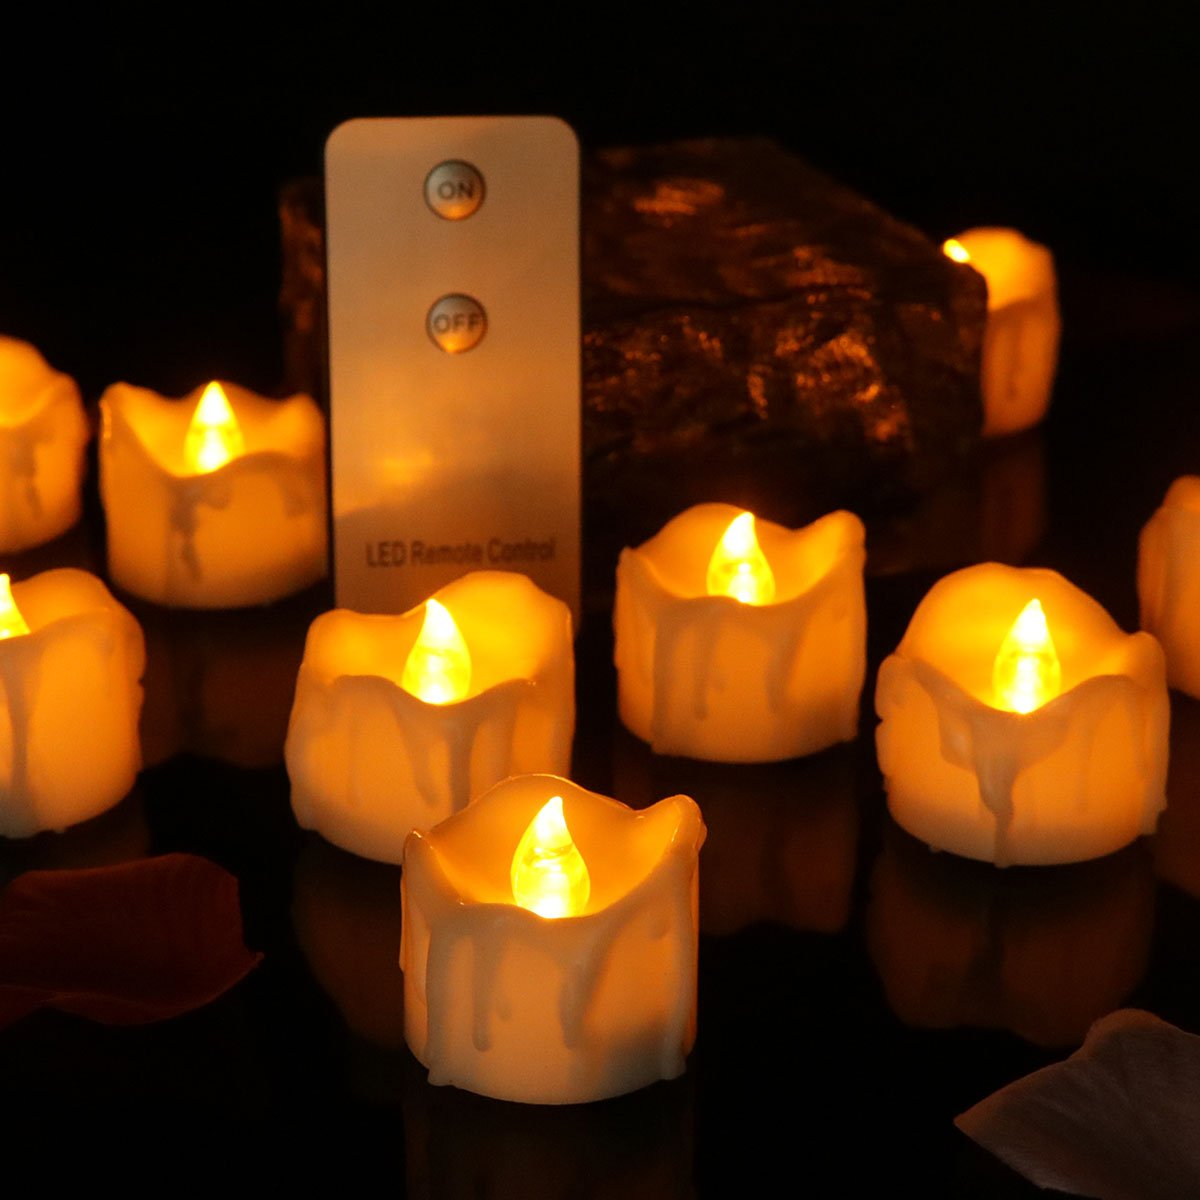 Youngerbaby 24pcs Yellow Flickering LED Tea Light Candles, Flameless Wax Dripped with Remote Control Battery-Powered Tealights For Wedding, Christmas, Outdoor Party, Dinner Table, Back Yard